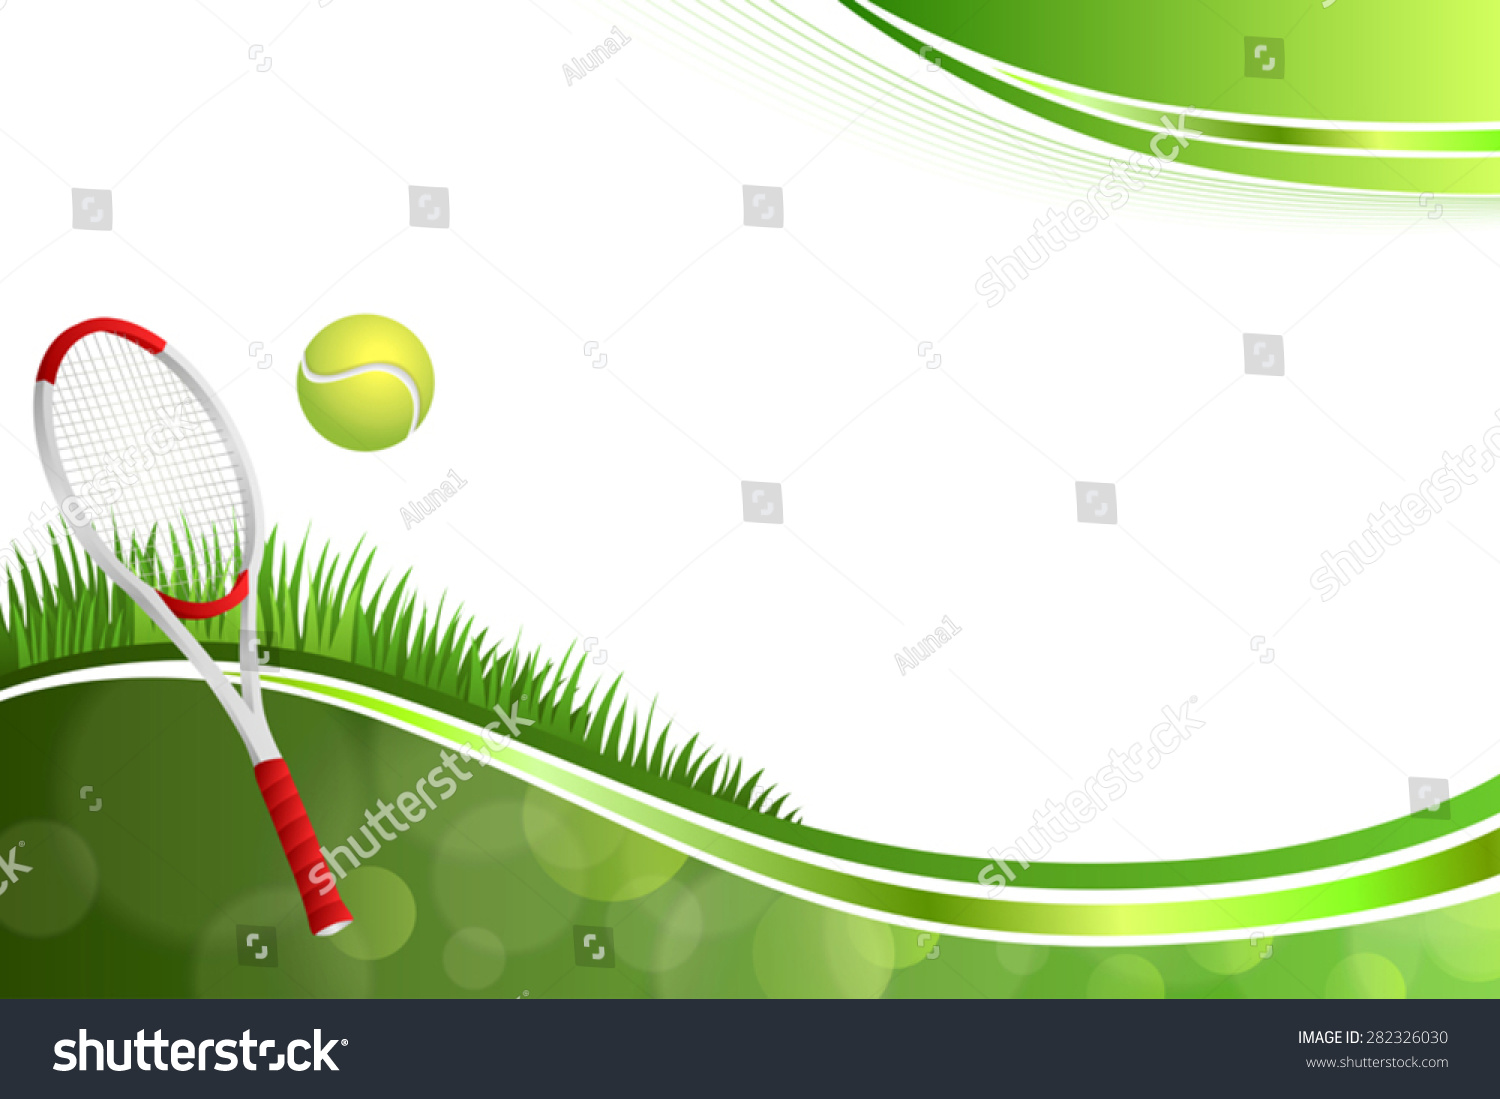 Golf Wallpapers  Full HD wallpaper search